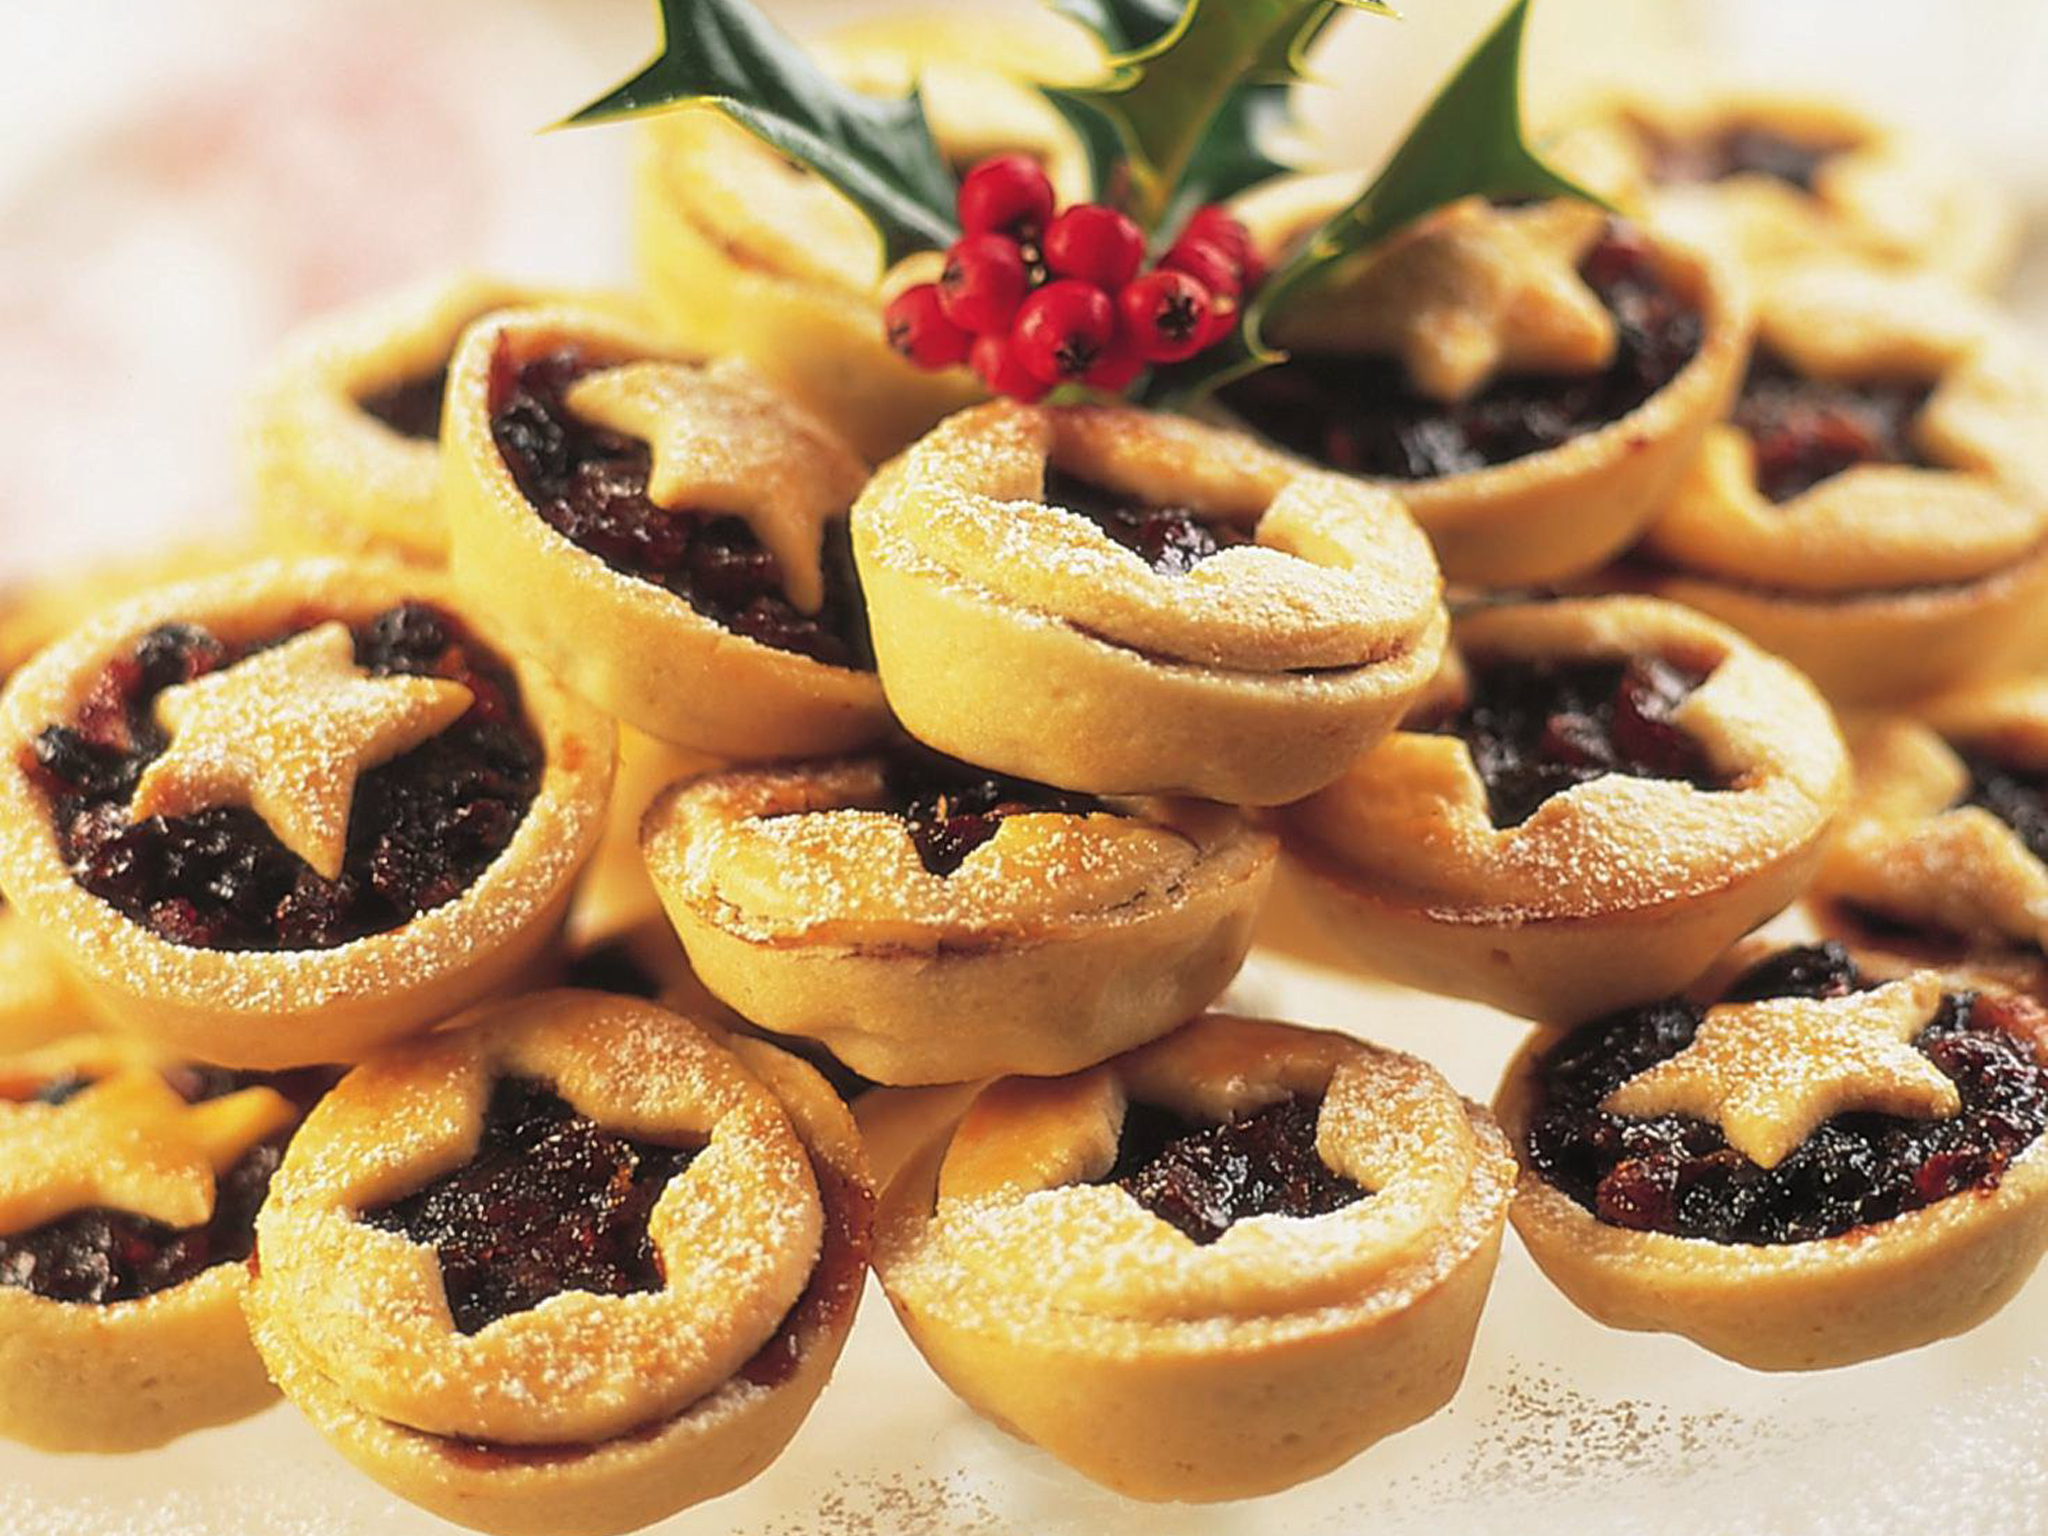 BBC Food - Recipes - Mince pies